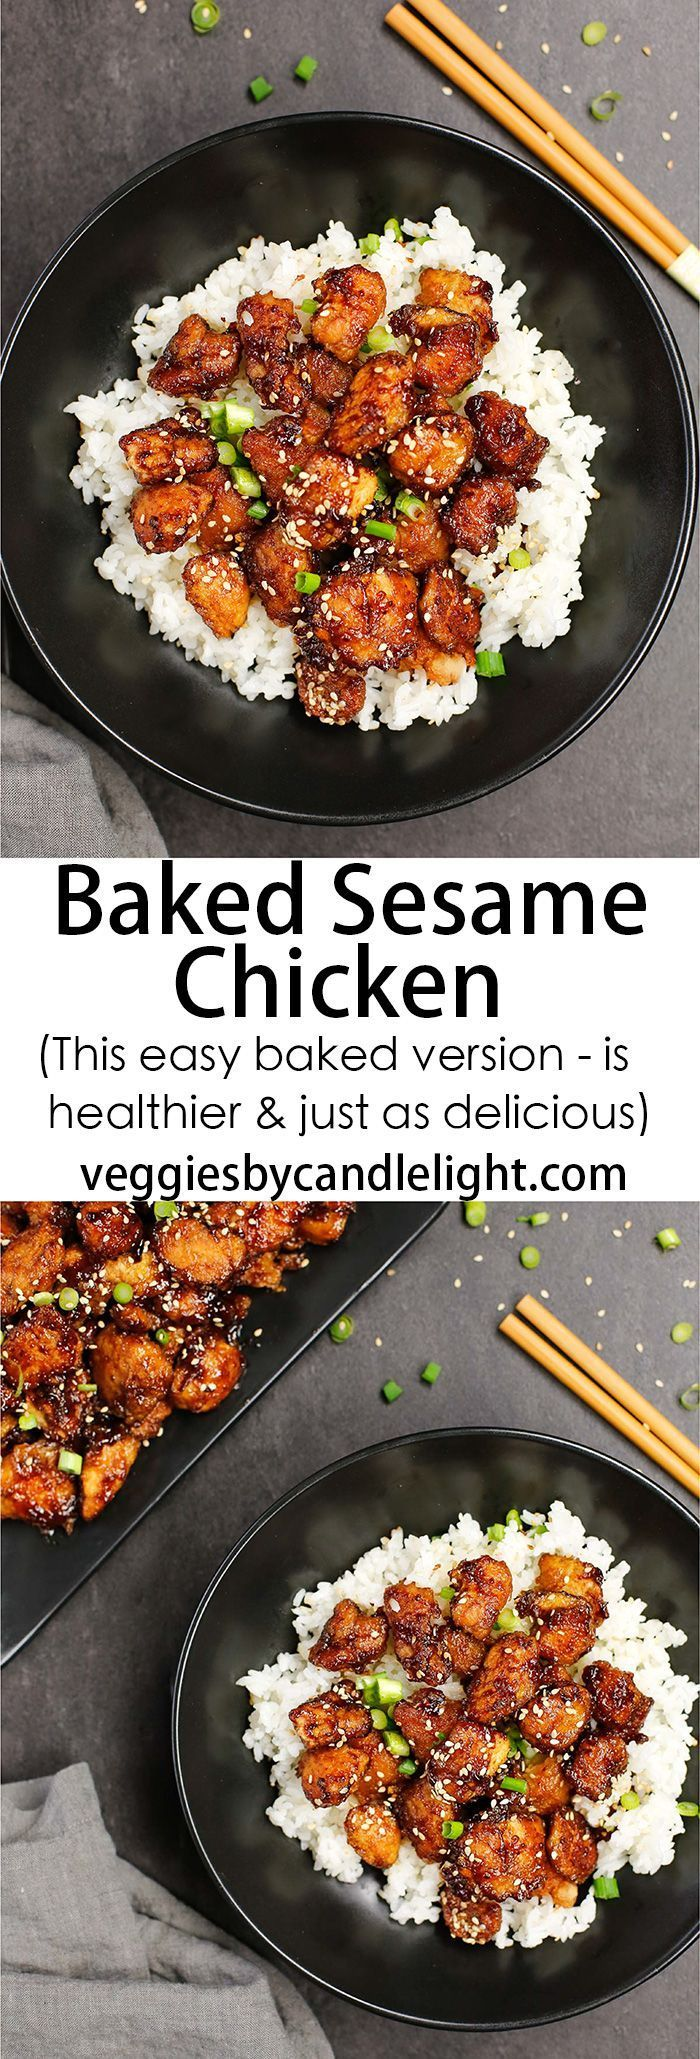 Baked Sesame Chicken - When it comes to dinner, you can either call your local Chinese takeout joint or make Sesame Chicken yourself. This baked version is every bit as delicious!